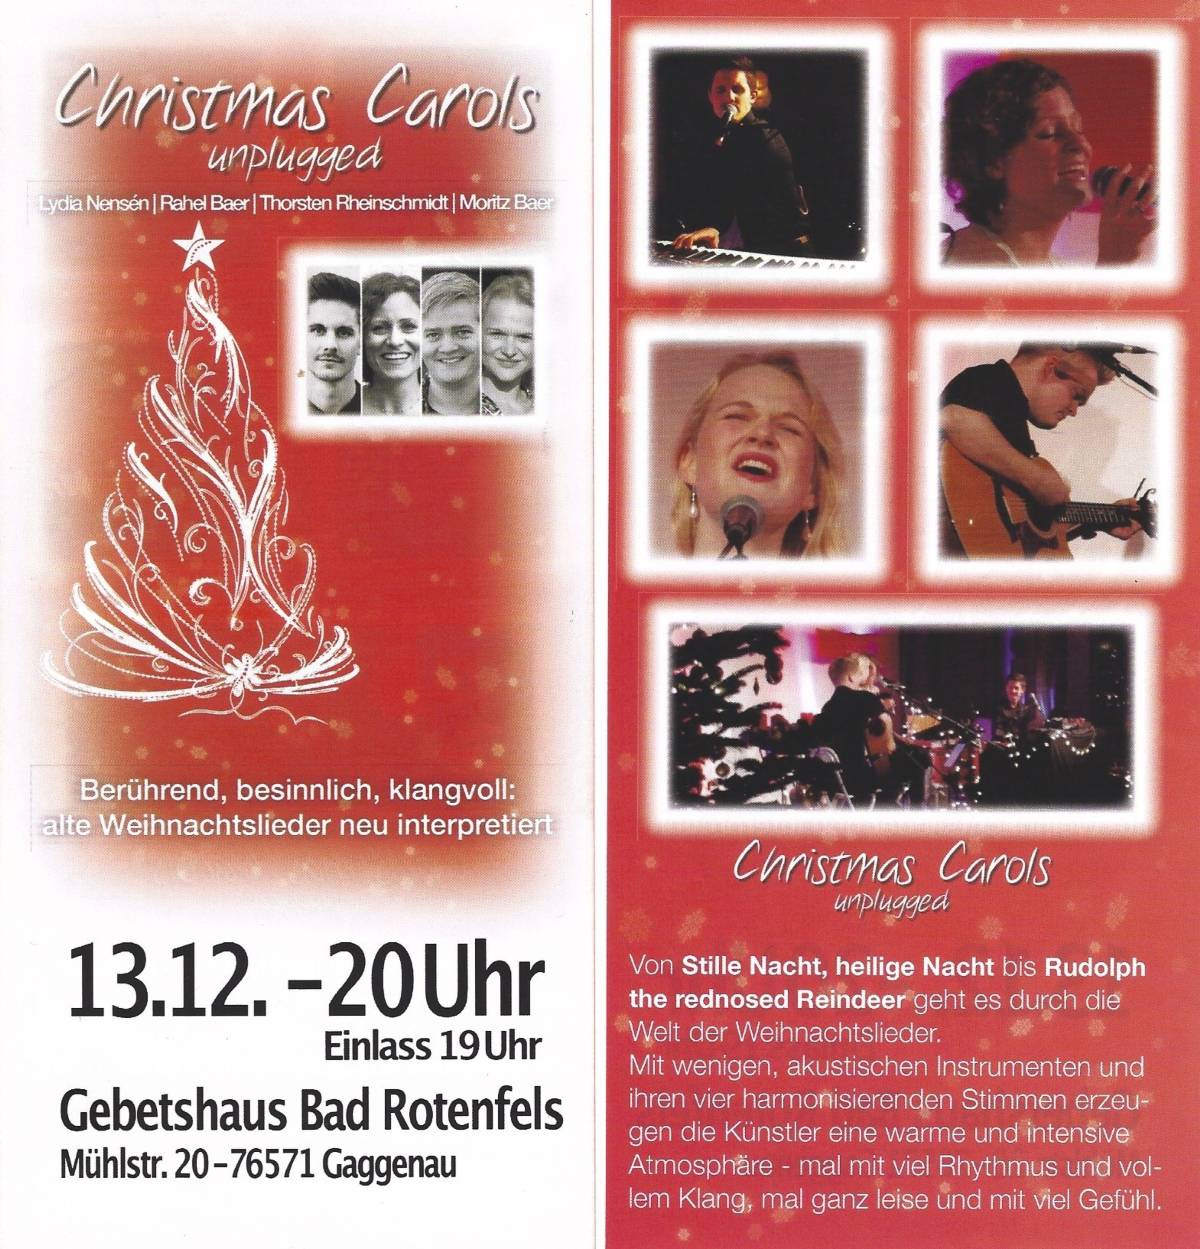 2019-12-13 Chrismas Carols unplugged-flyer